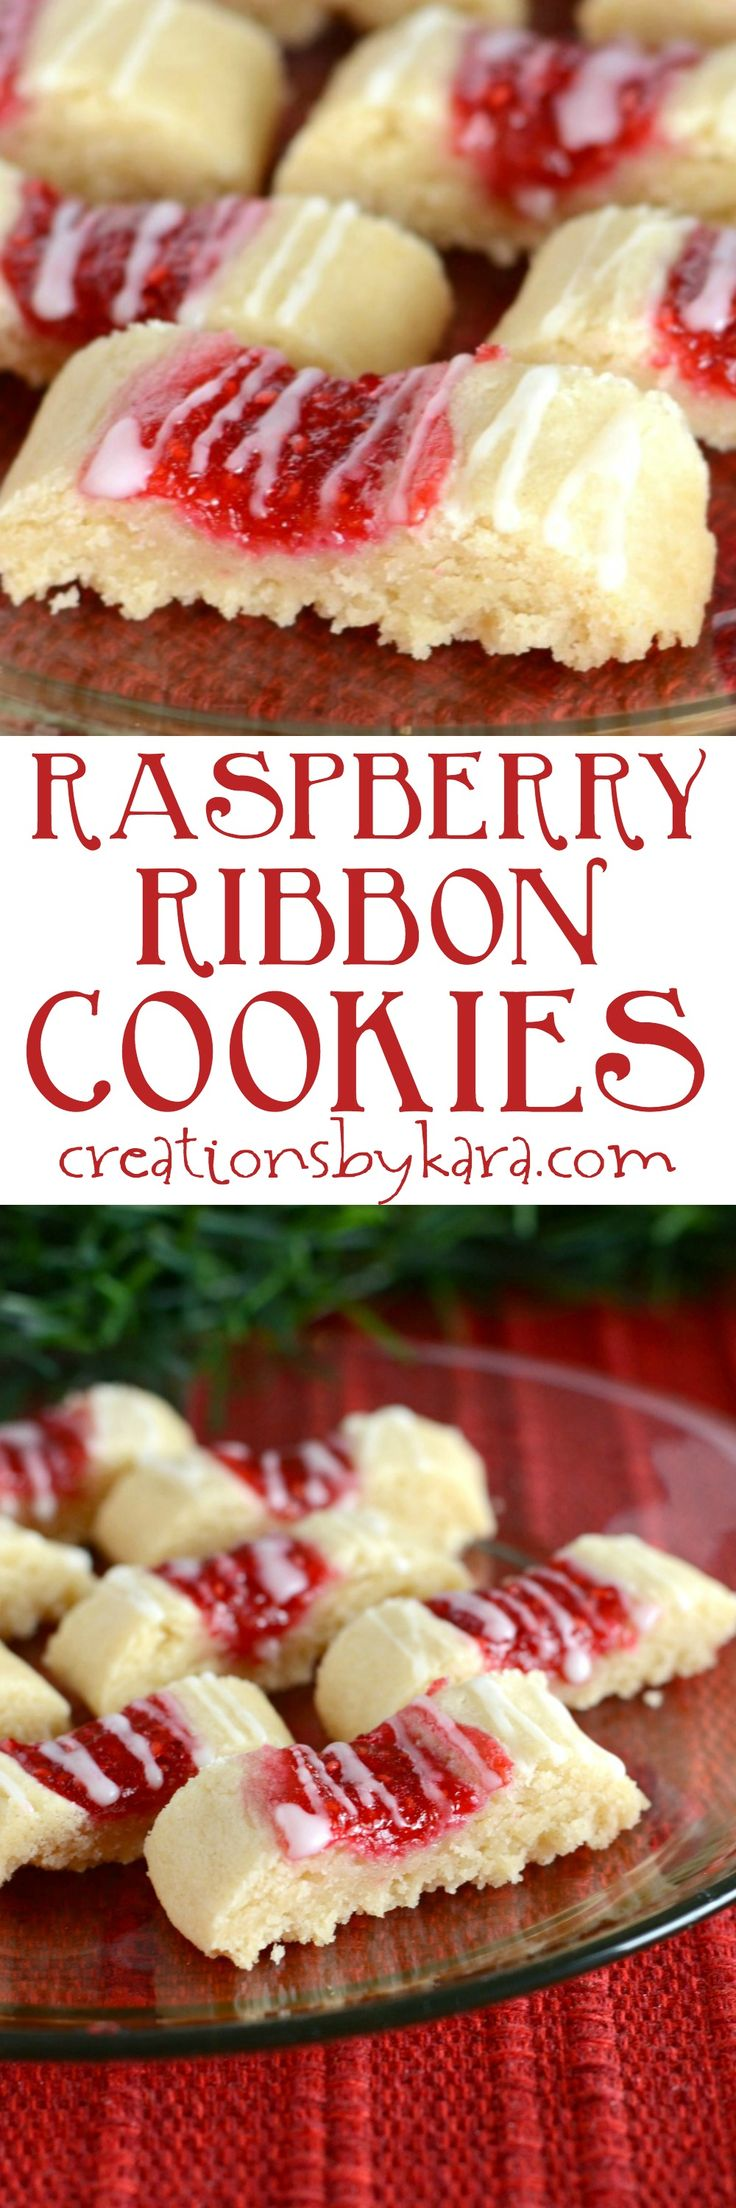 Everyone loves these raspberry filled cookies! They are simple to make and taste amazing. A perfect Christmas cookie recipe!